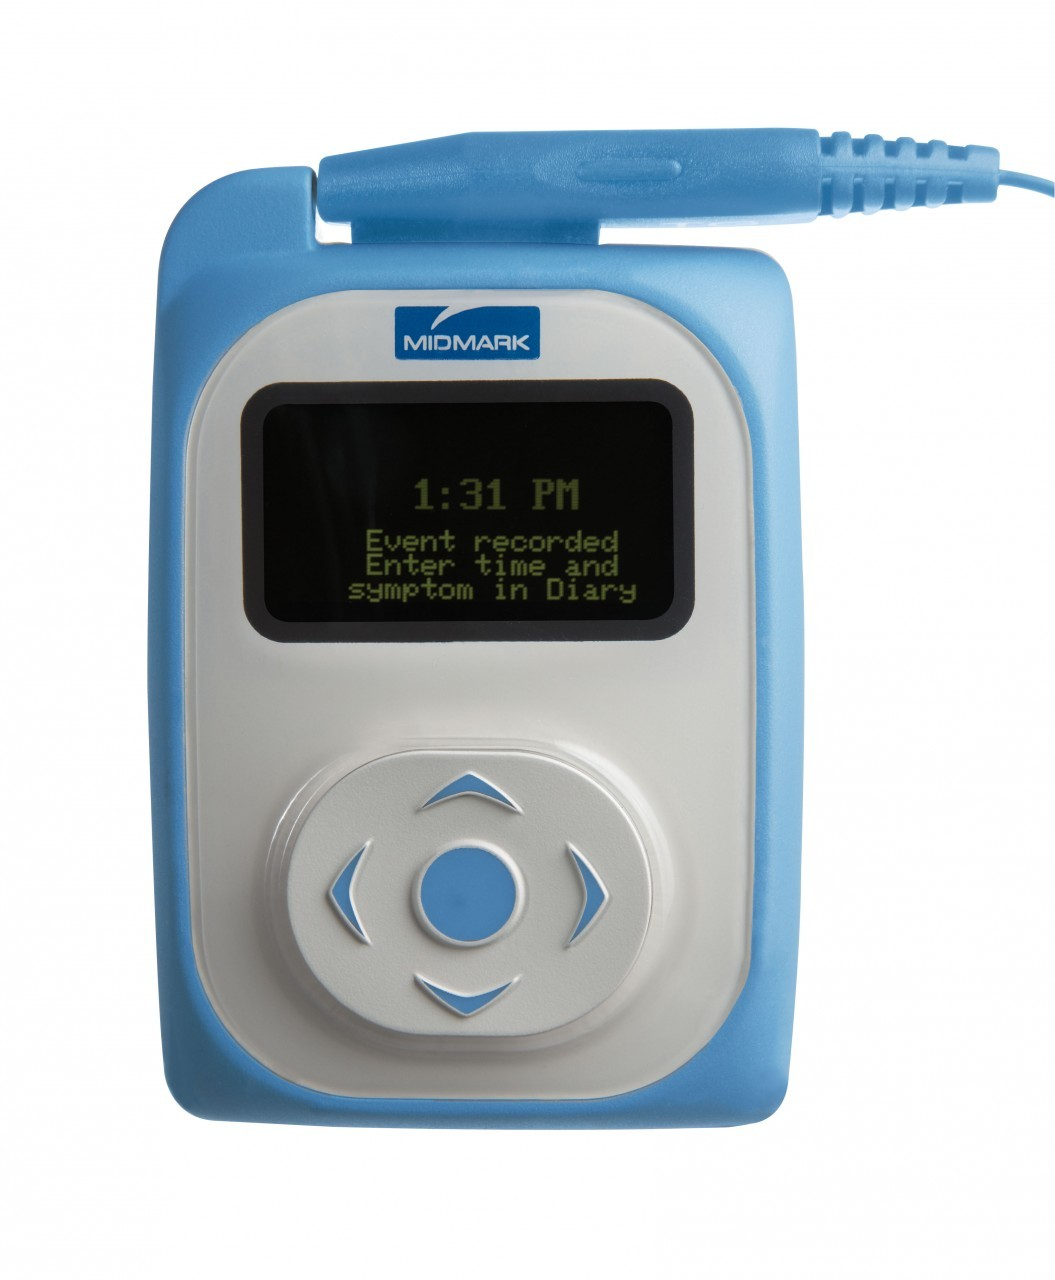 Midmark Iqholter # 4-000-0116 - IQholter EP Digital Holter with Pacemaker Detection & Recorder, No Software, Each